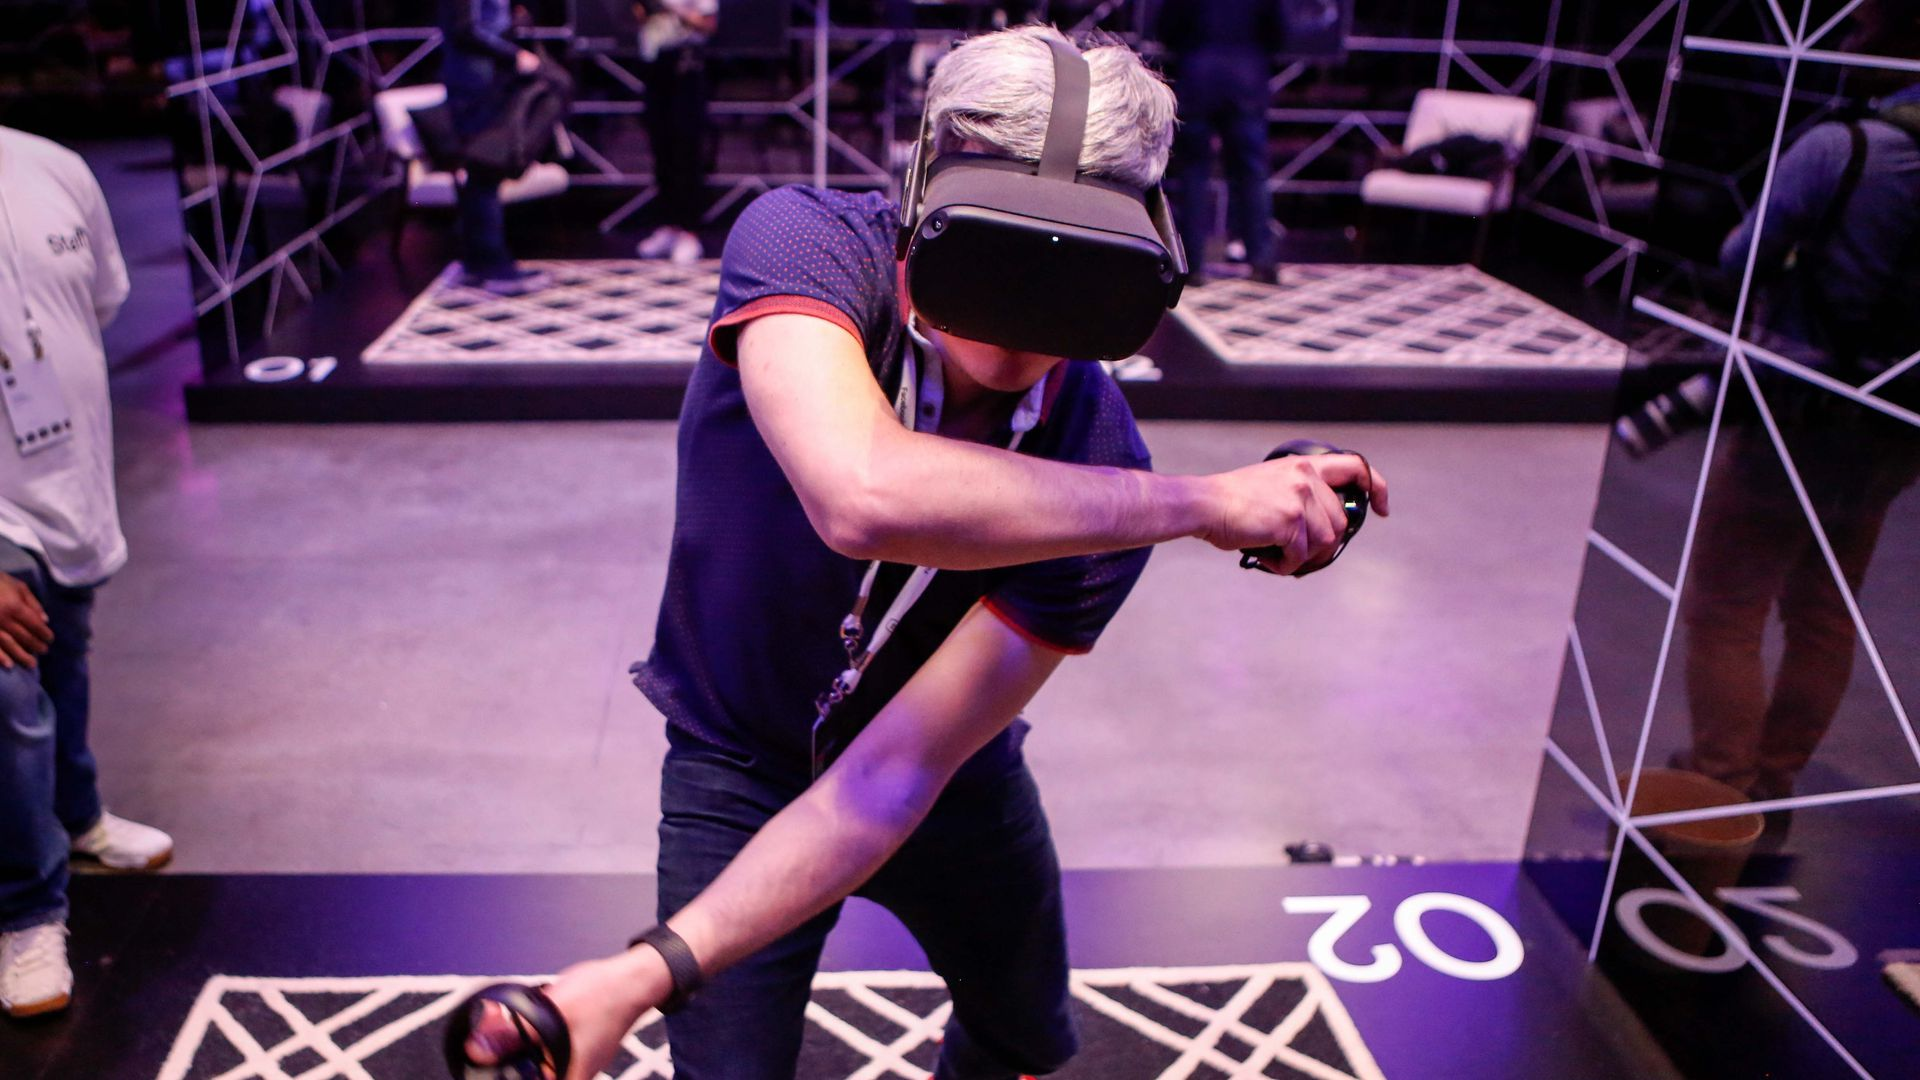 Photo of a person wearing a VR headset and gesticulating with two controllers